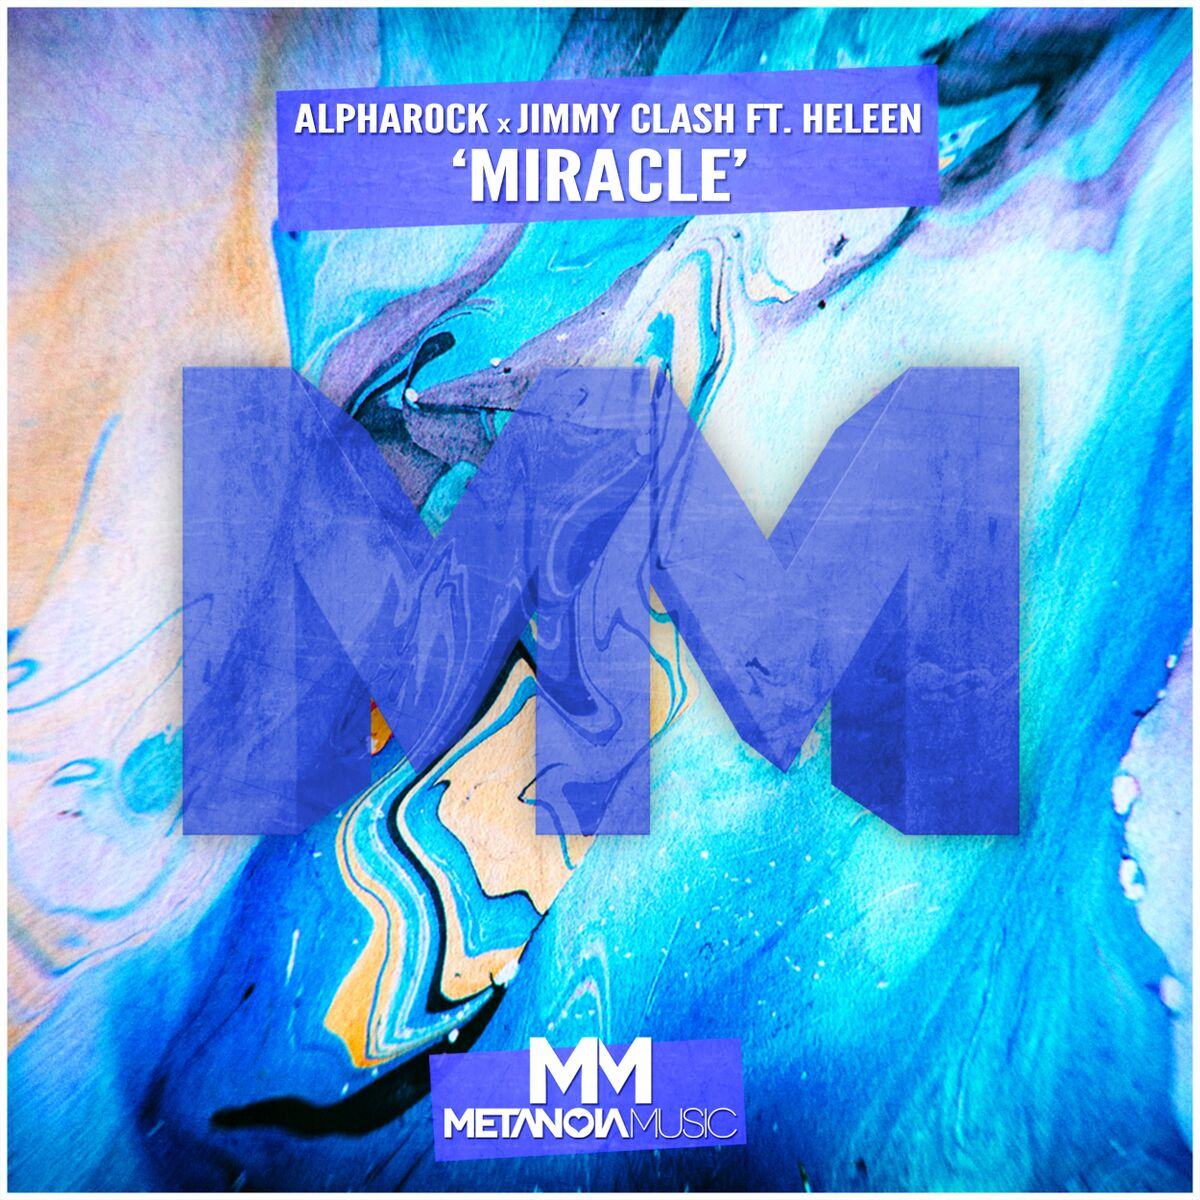 Alpharock x Jimmy Clash - Miracle (ft. Heleen) [Metanoia]